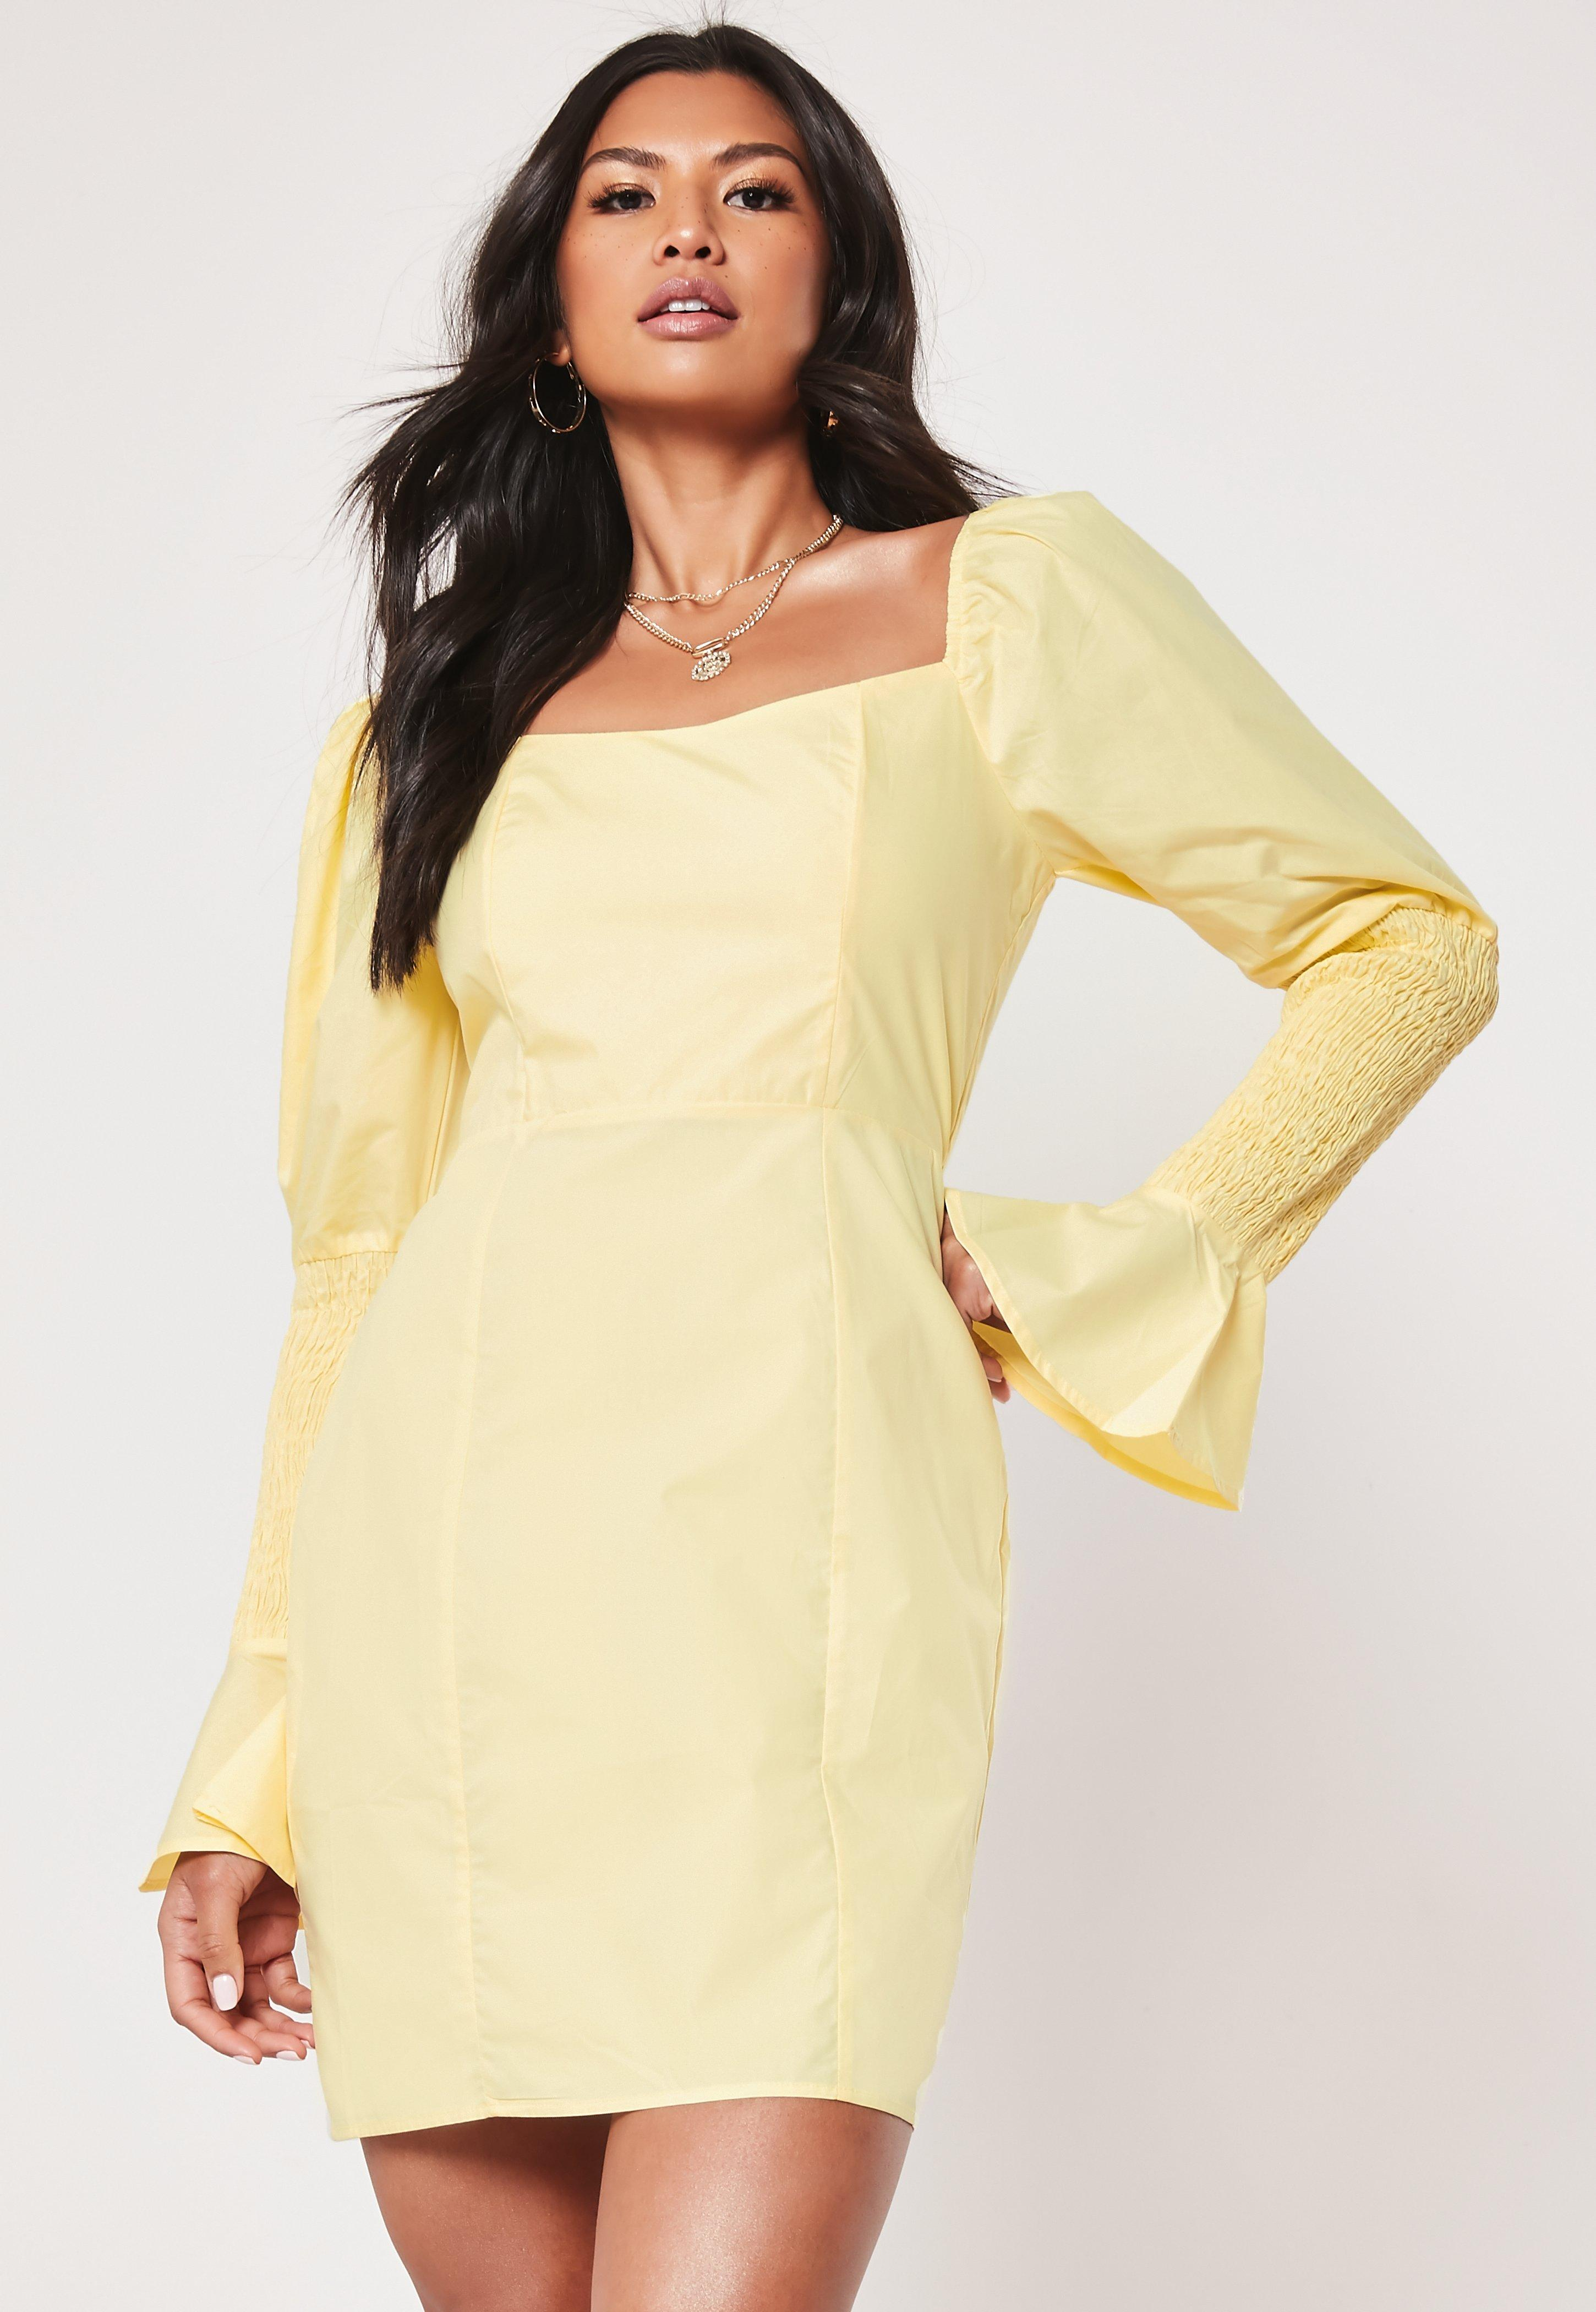 1dafd83804fd0 Long Sleeve Dresses | Long Sleeve Maxi Dresses - Missguided